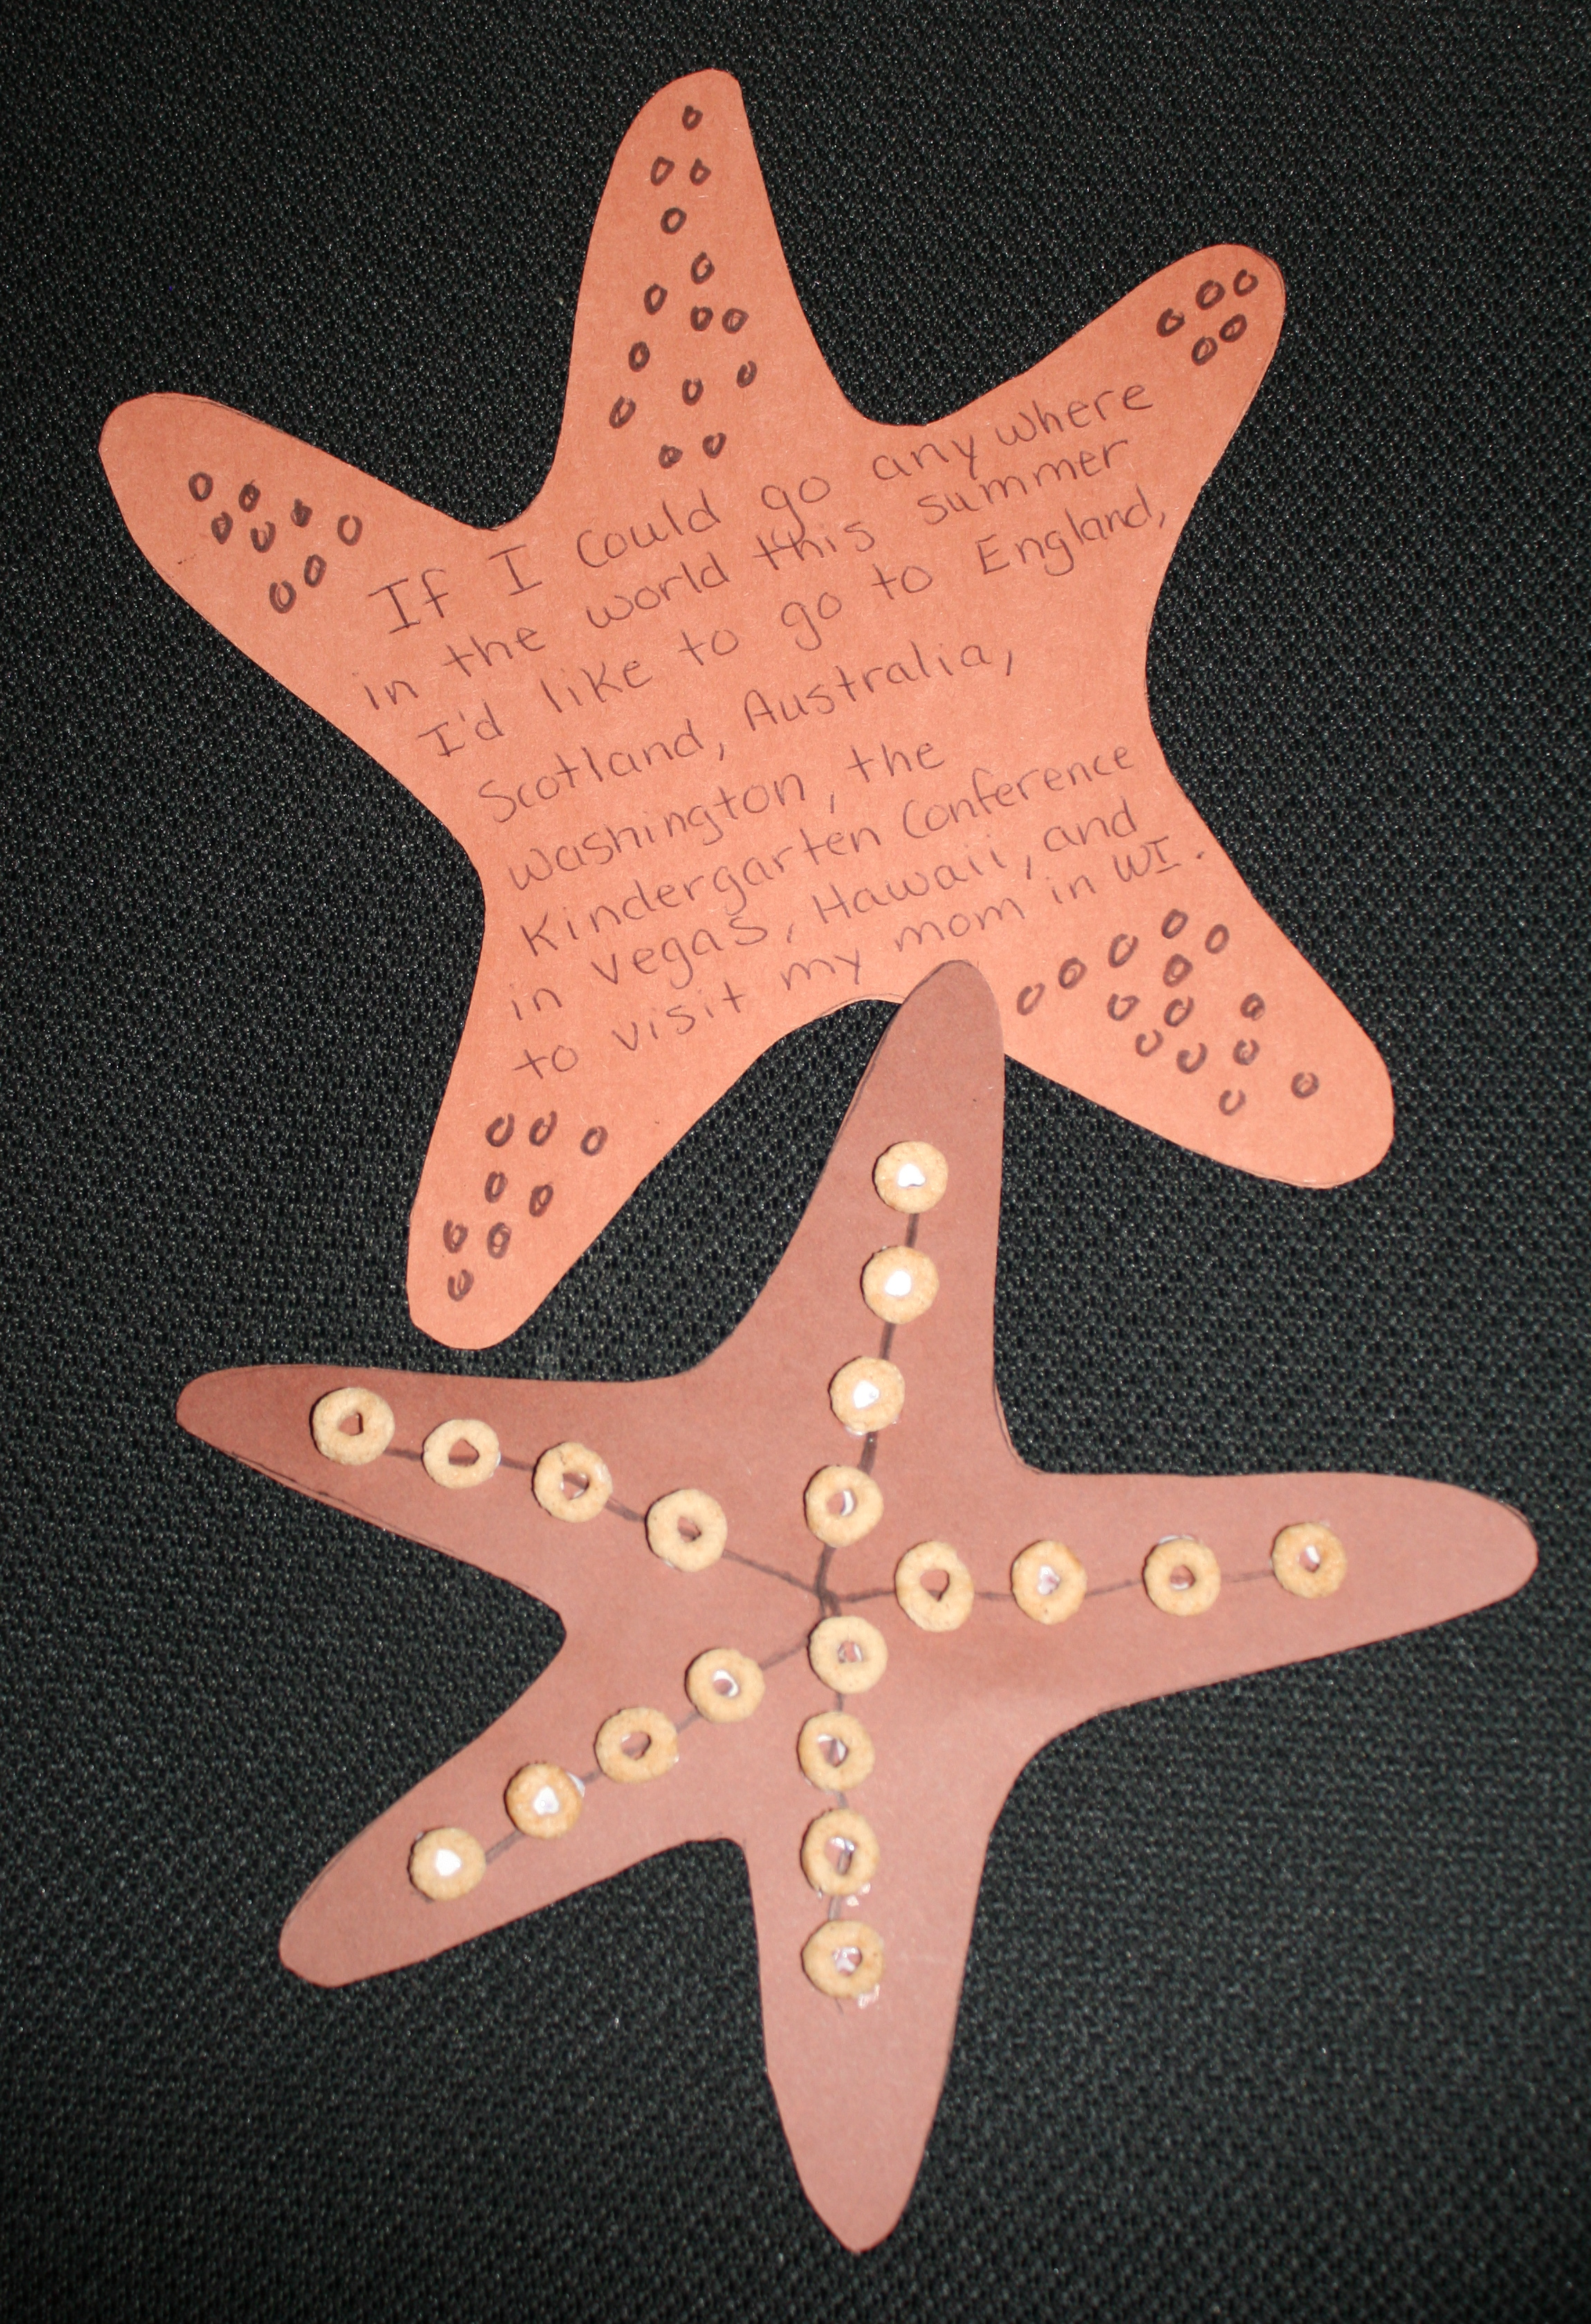 summer writing prompts, writing prompts for the end of the year, end of the year activities, ideas for the end of the year, June bulletin boards, bulletin boards for the end of the year, bulletin board ideas for the end of the year, summer bulletin boards, summer bulletin board ideas, ideas for the last week of school, end of the year ideas, activities for the last week of school, lessons for the last week of school, father's day ideas, father's day activities, whale ideas, whale activities, starfish ideas, starfish activites, bucket lists for kids,